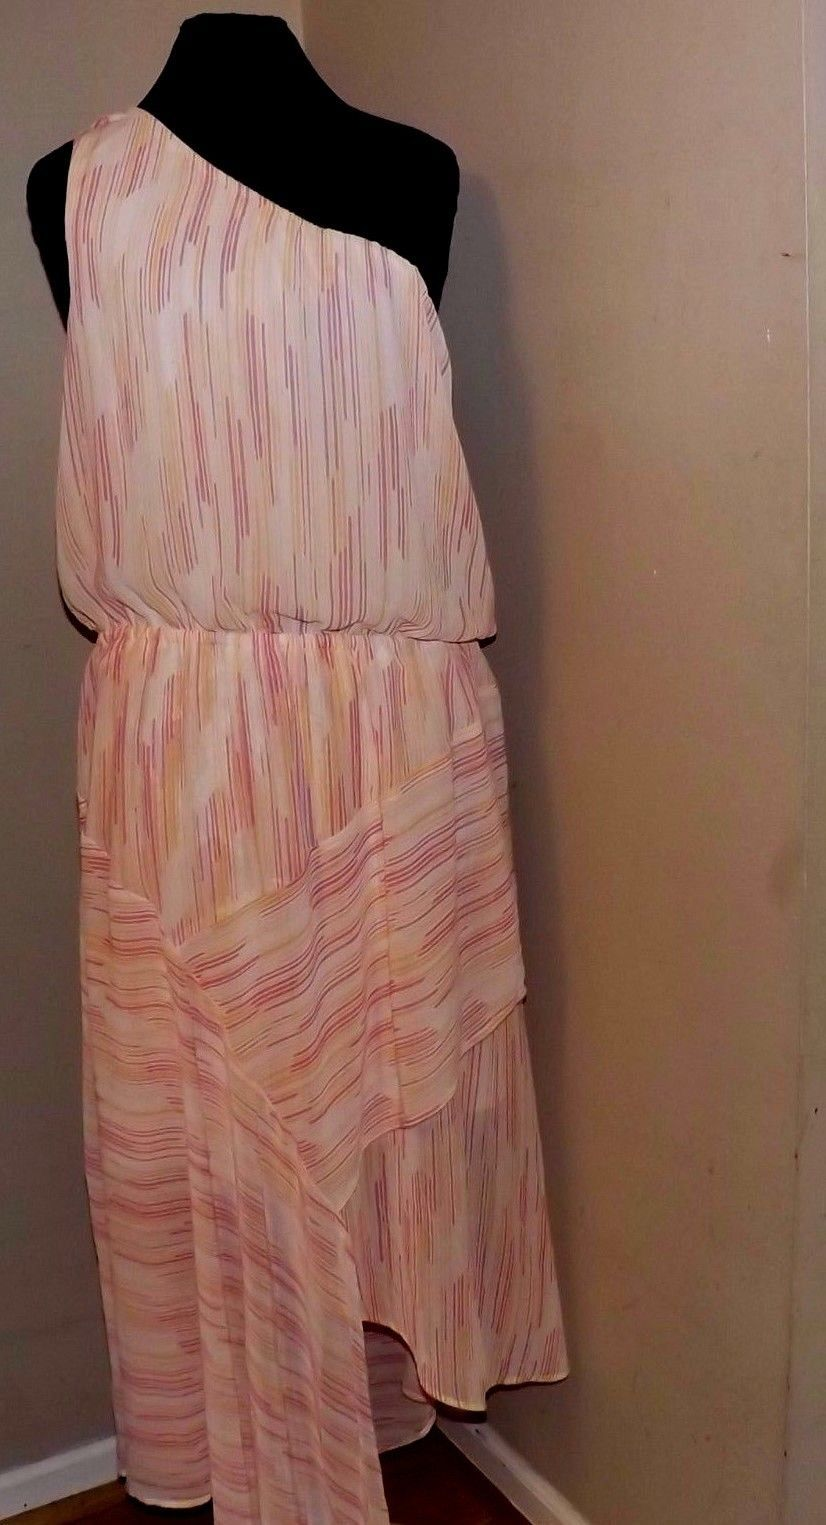 Cato fashions careers - Cool Awesome Yellow And Pink Striped One Shoulder Dress Xs Career Church New Cato Summer 2017